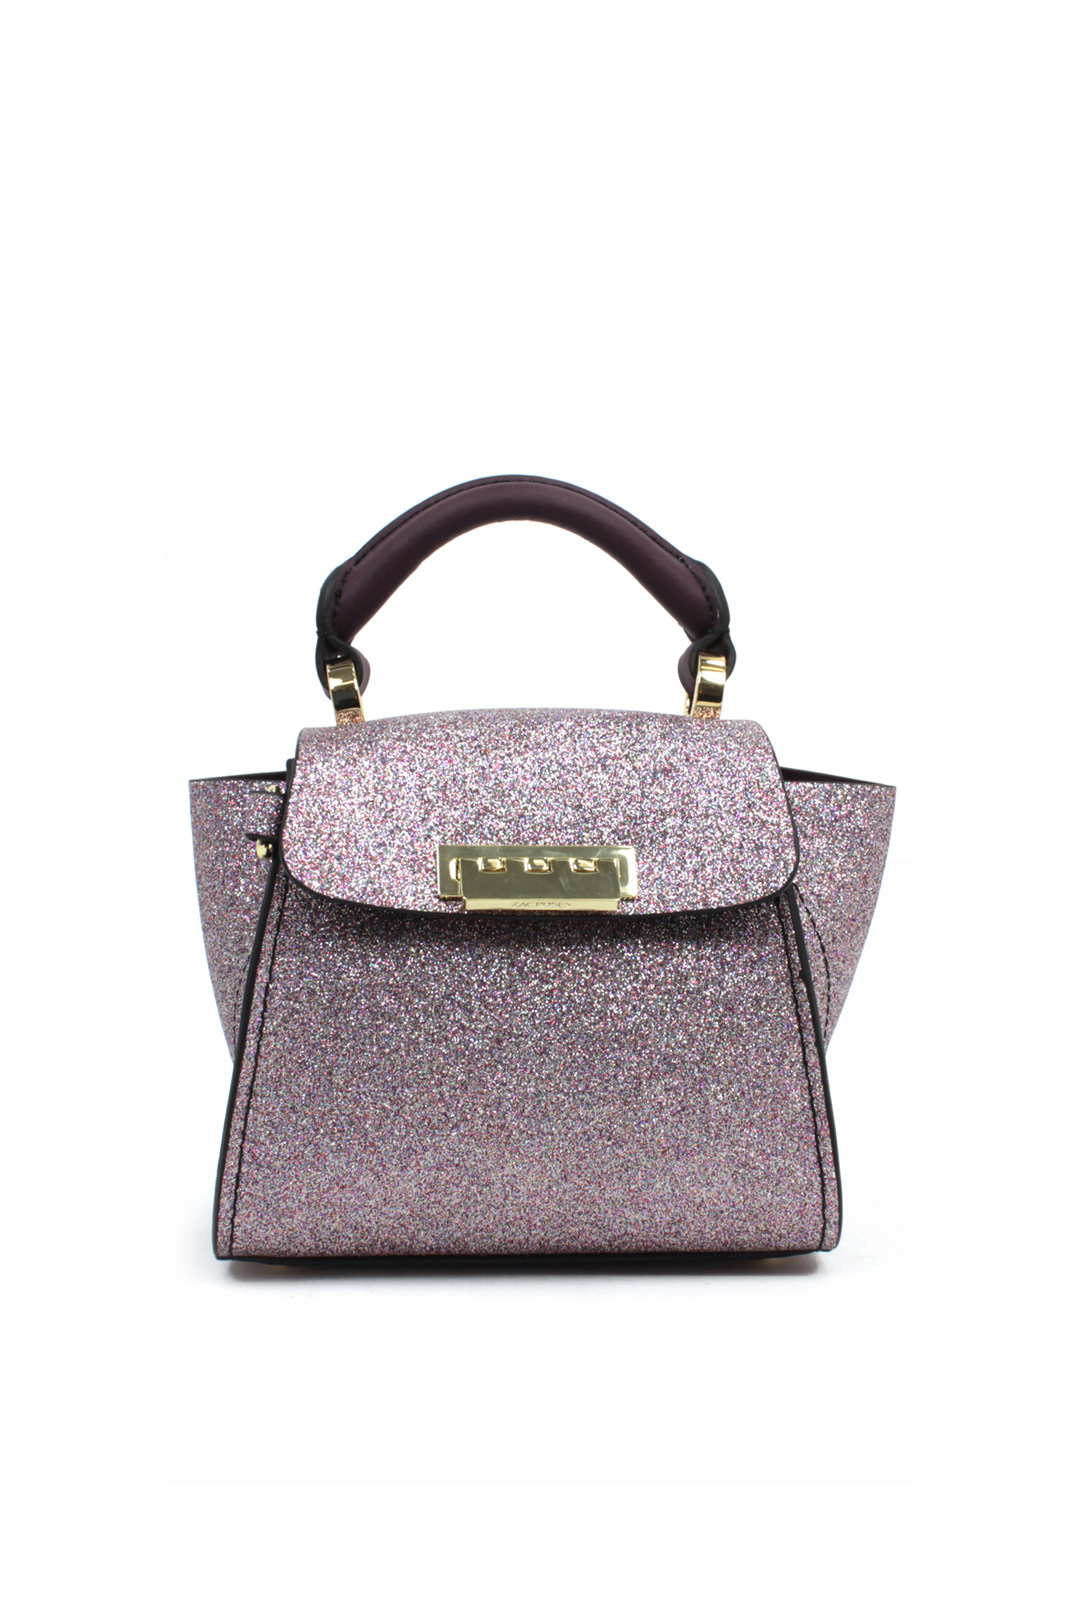 ZAC Posen Pink Glitter Mini Eartha Bag - This is the perfect party purse.